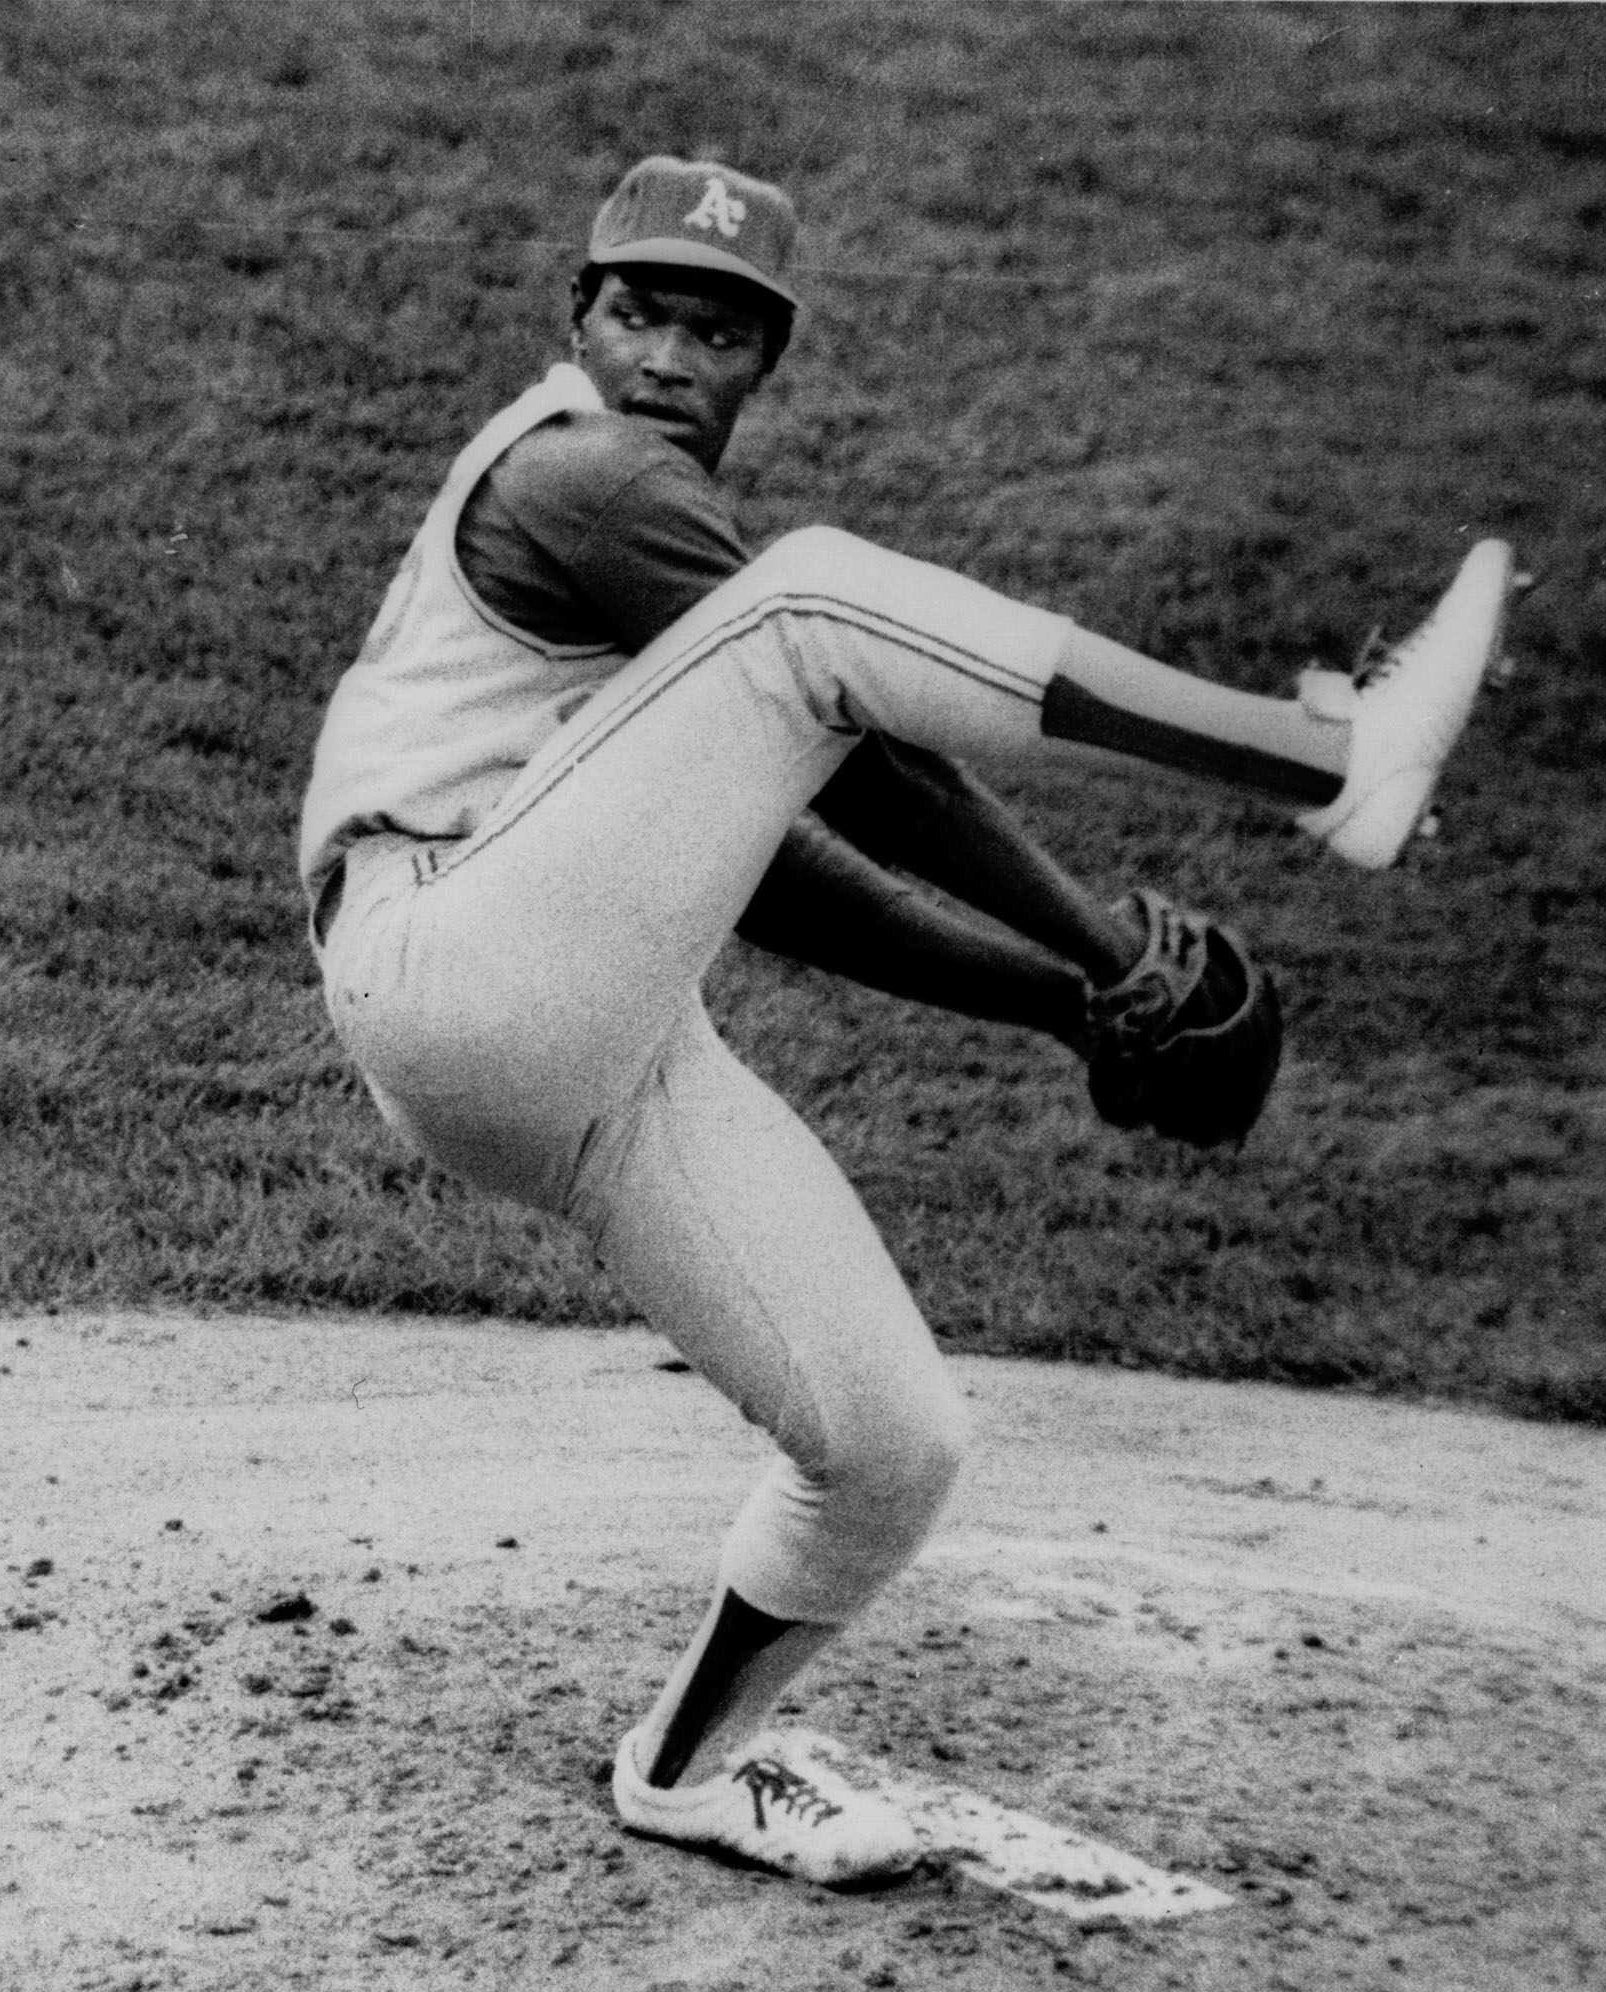 <span>Vida Blue, 21-year-old Oakland Athletics' southpaw, eyes the batter as he kicks out in a pitch to the plate in a game with the Kansas City Royals on May 14, 1971. (AP Photo)</span>